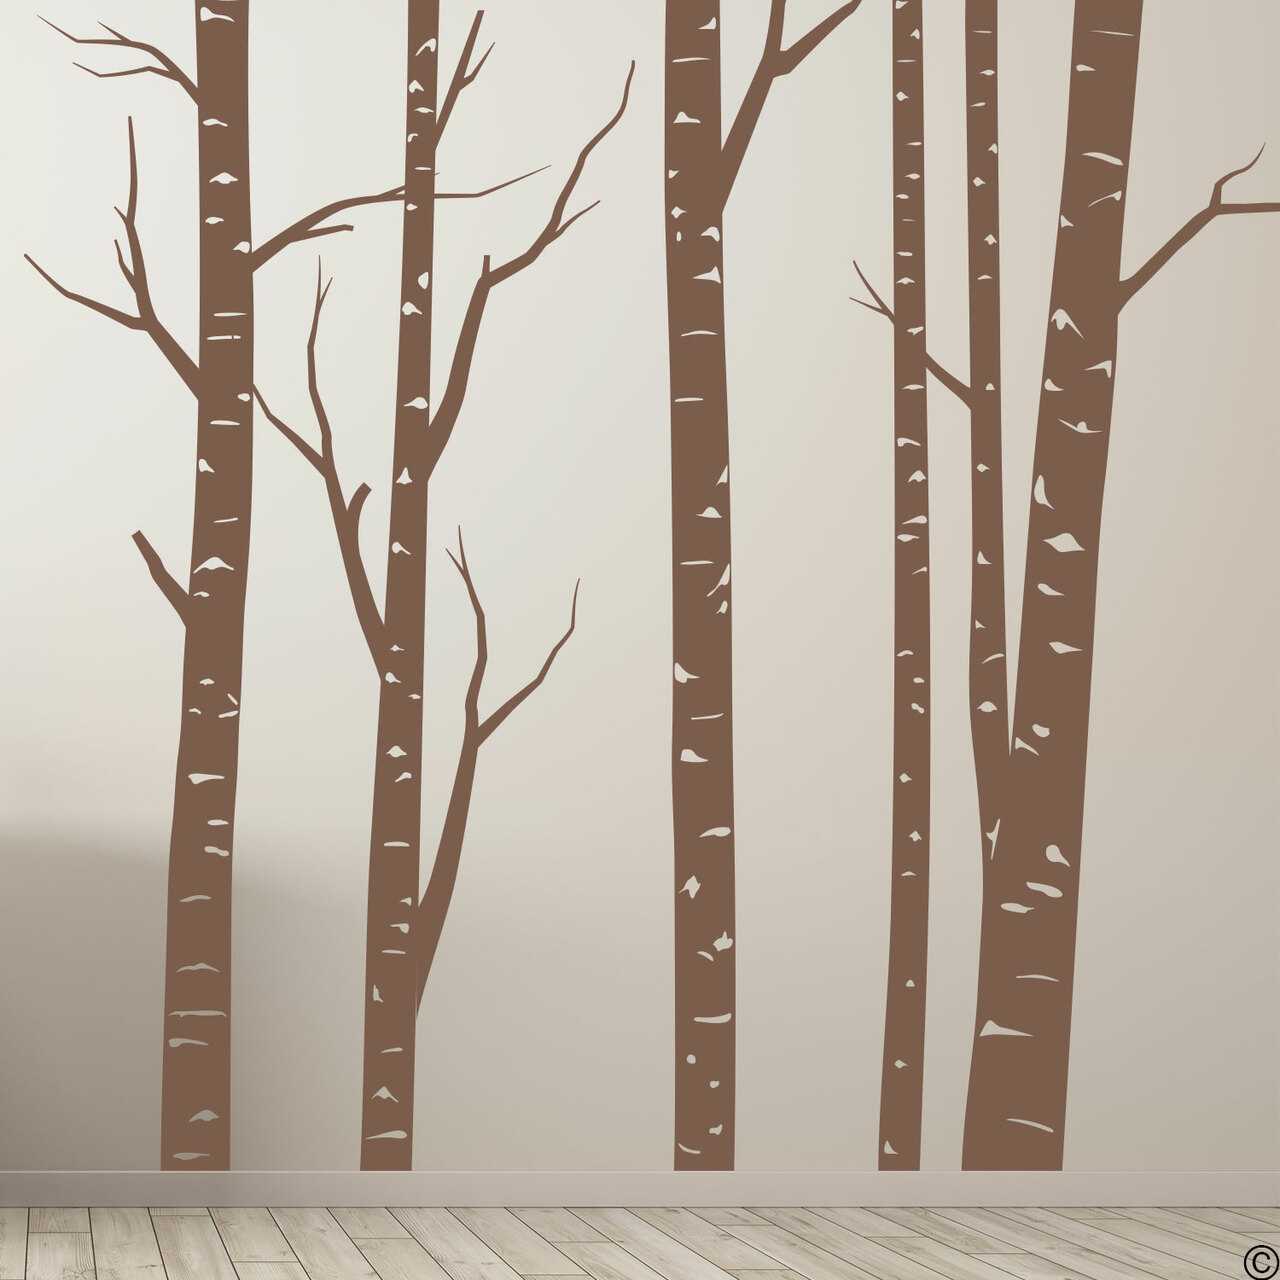 Aspen forest wall decal mural in limited edition espresso vinyl color.